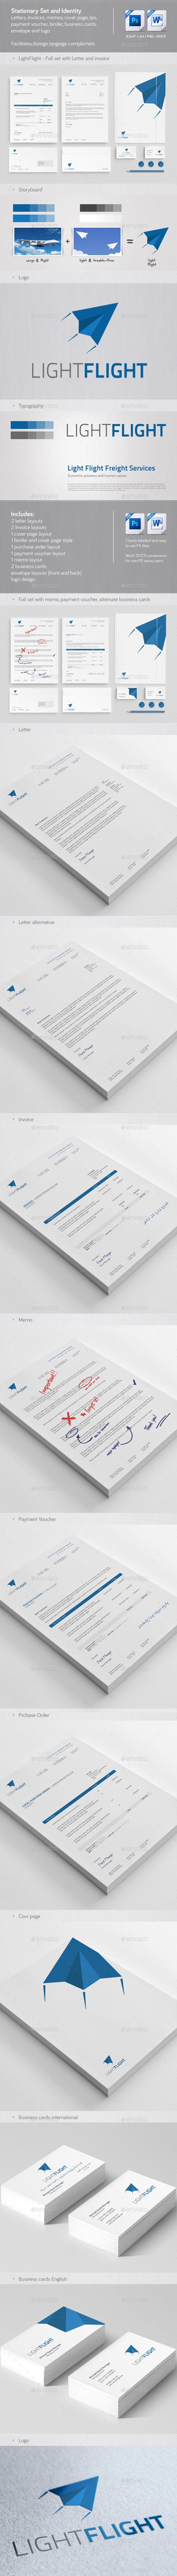 GraphicRiver Clean & Modern Stationary Invoice and Identity 2 9110090